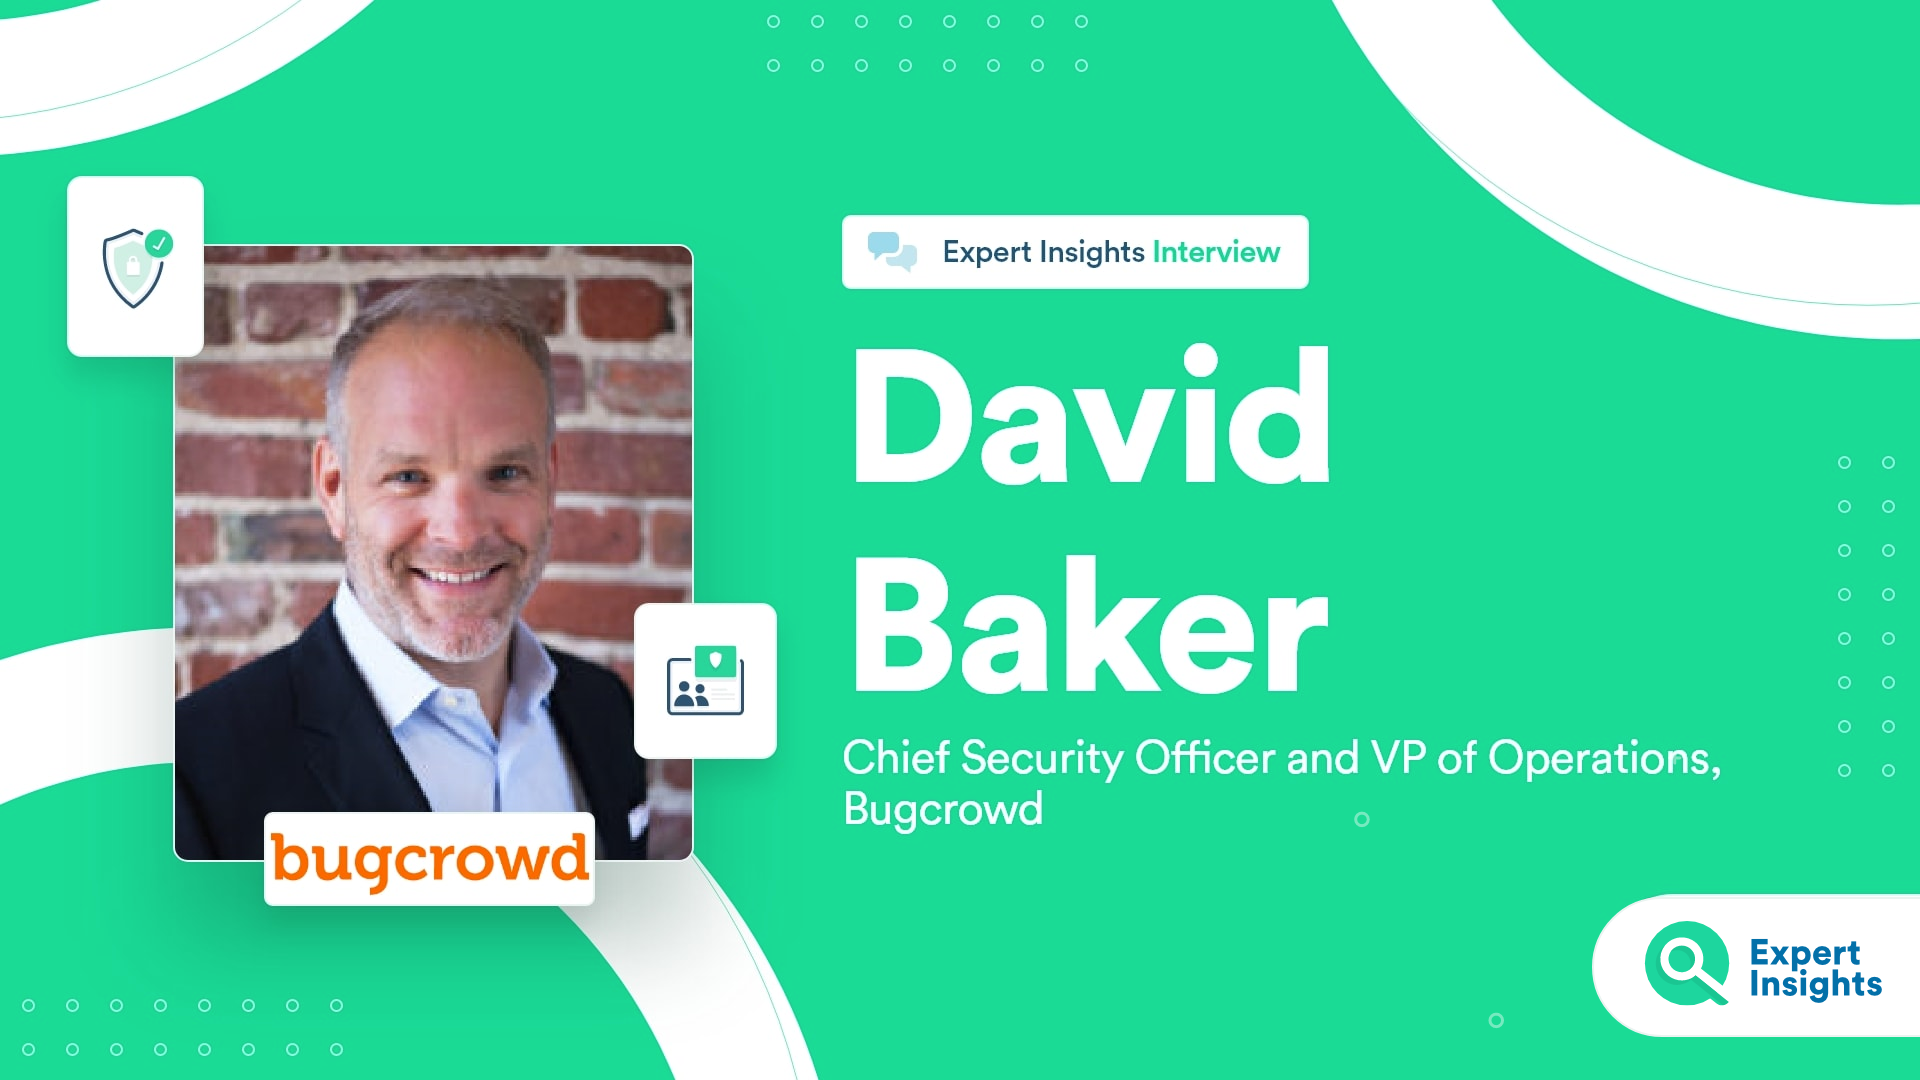 Expert Insights Interview With David Baker Of Bugcrowd